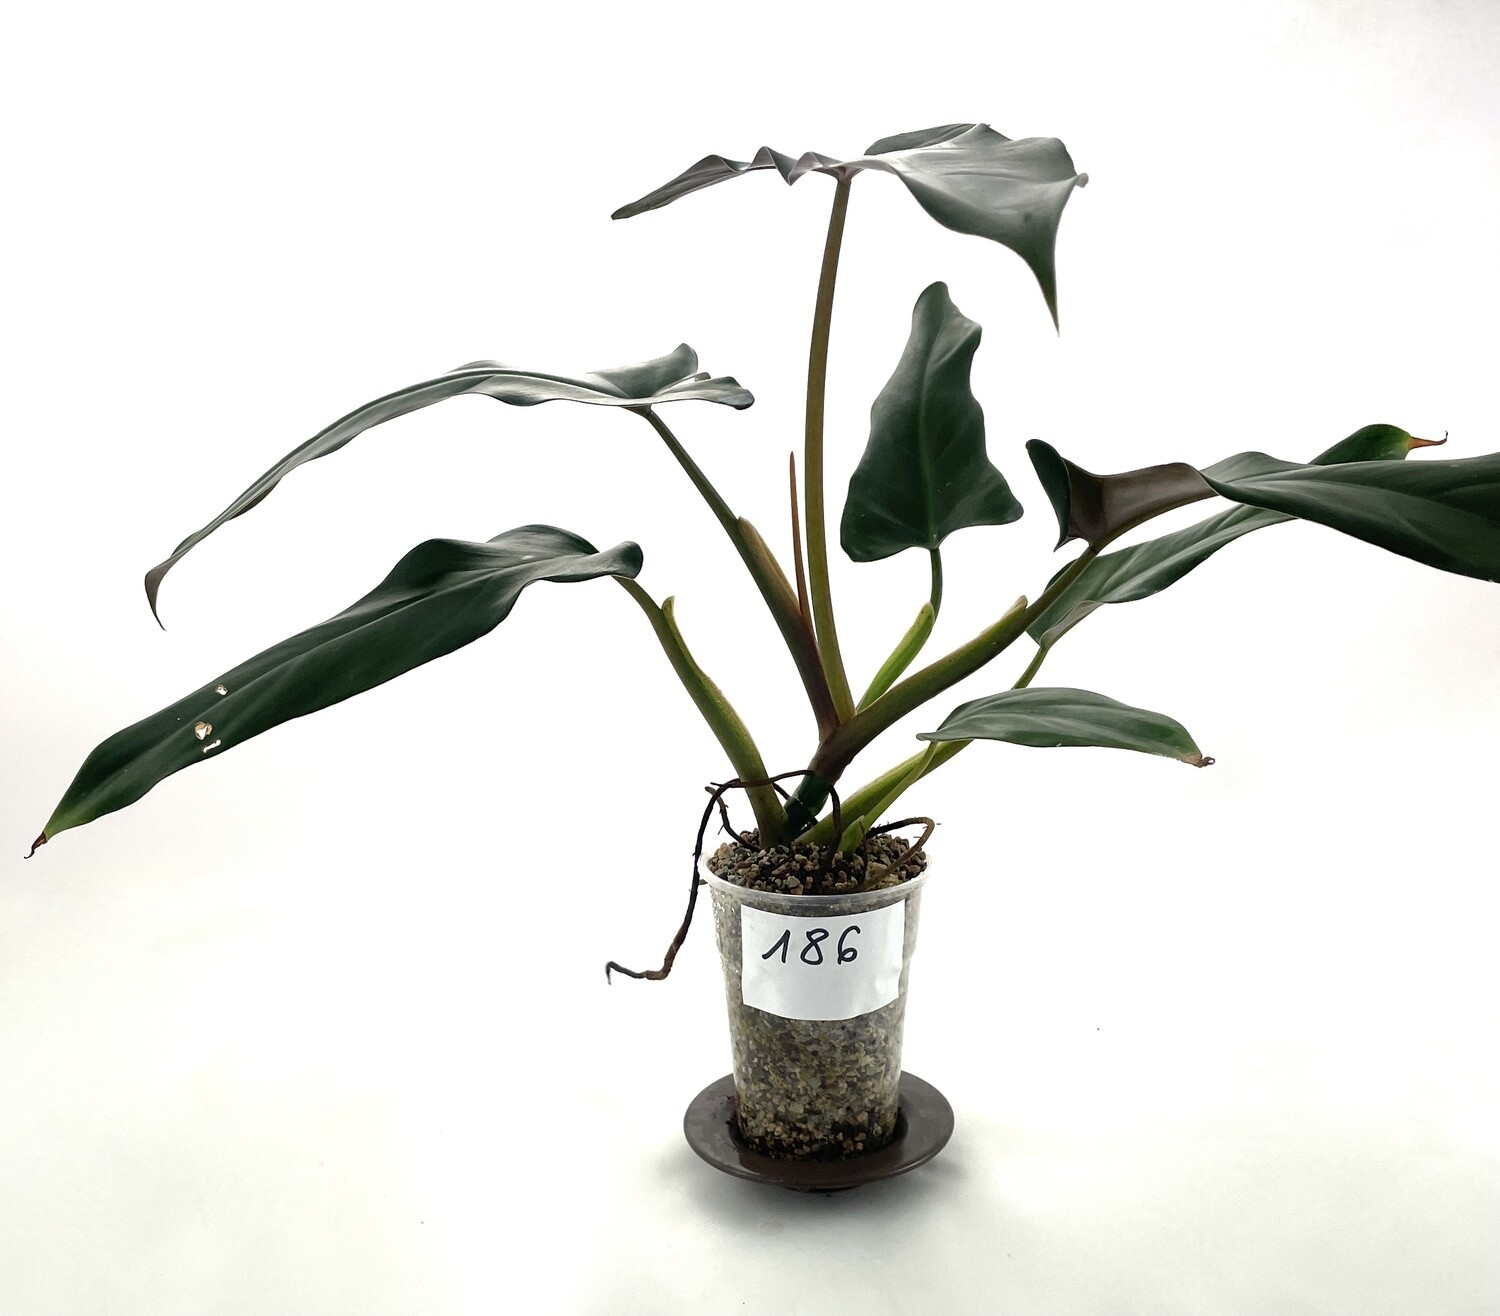 Philodendron mexicanum nr 186 DUŻA